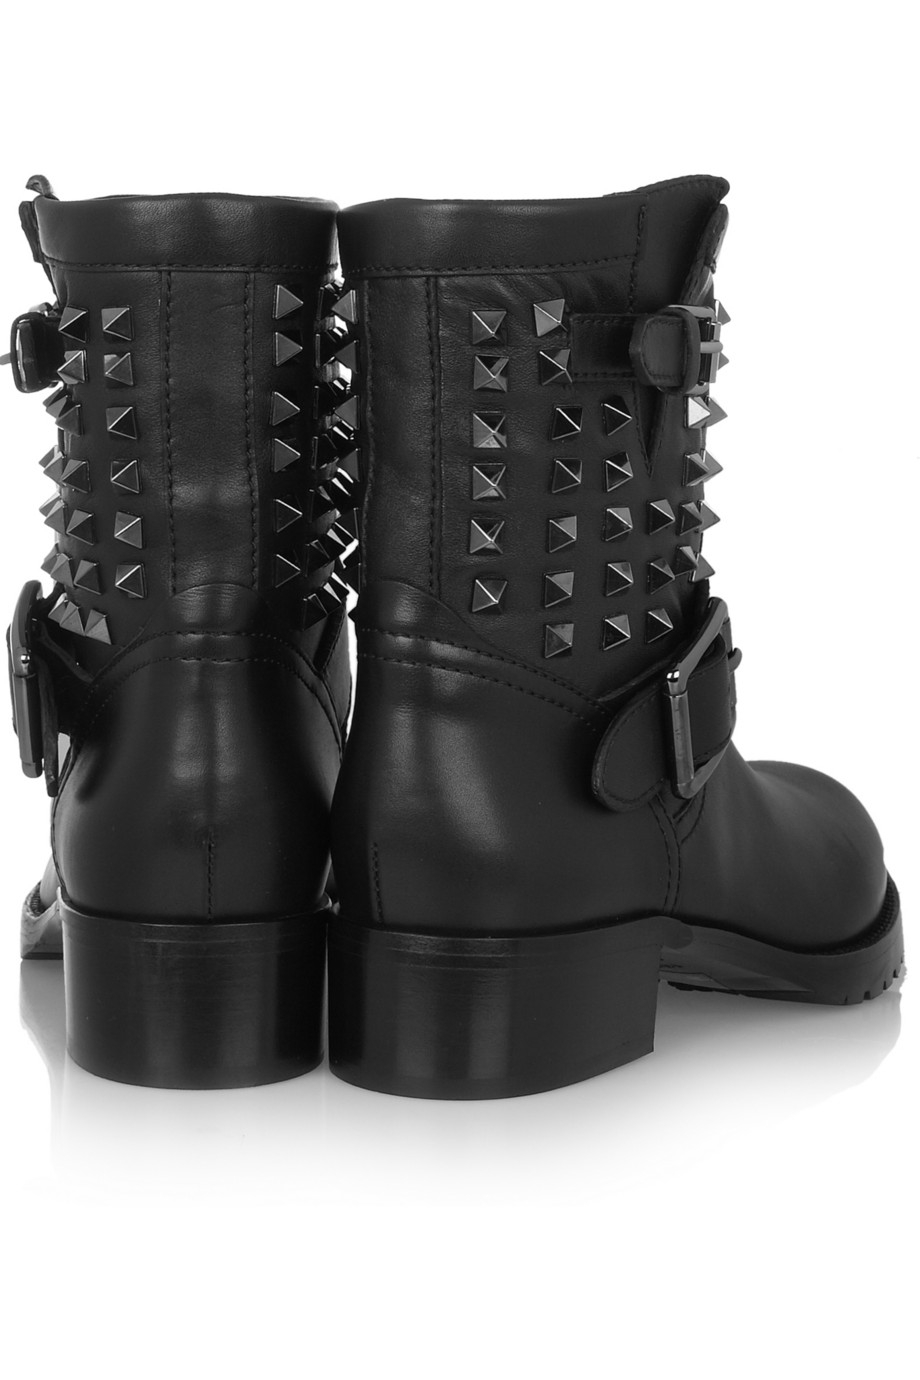 lyst valentino studded leather biker boots in black